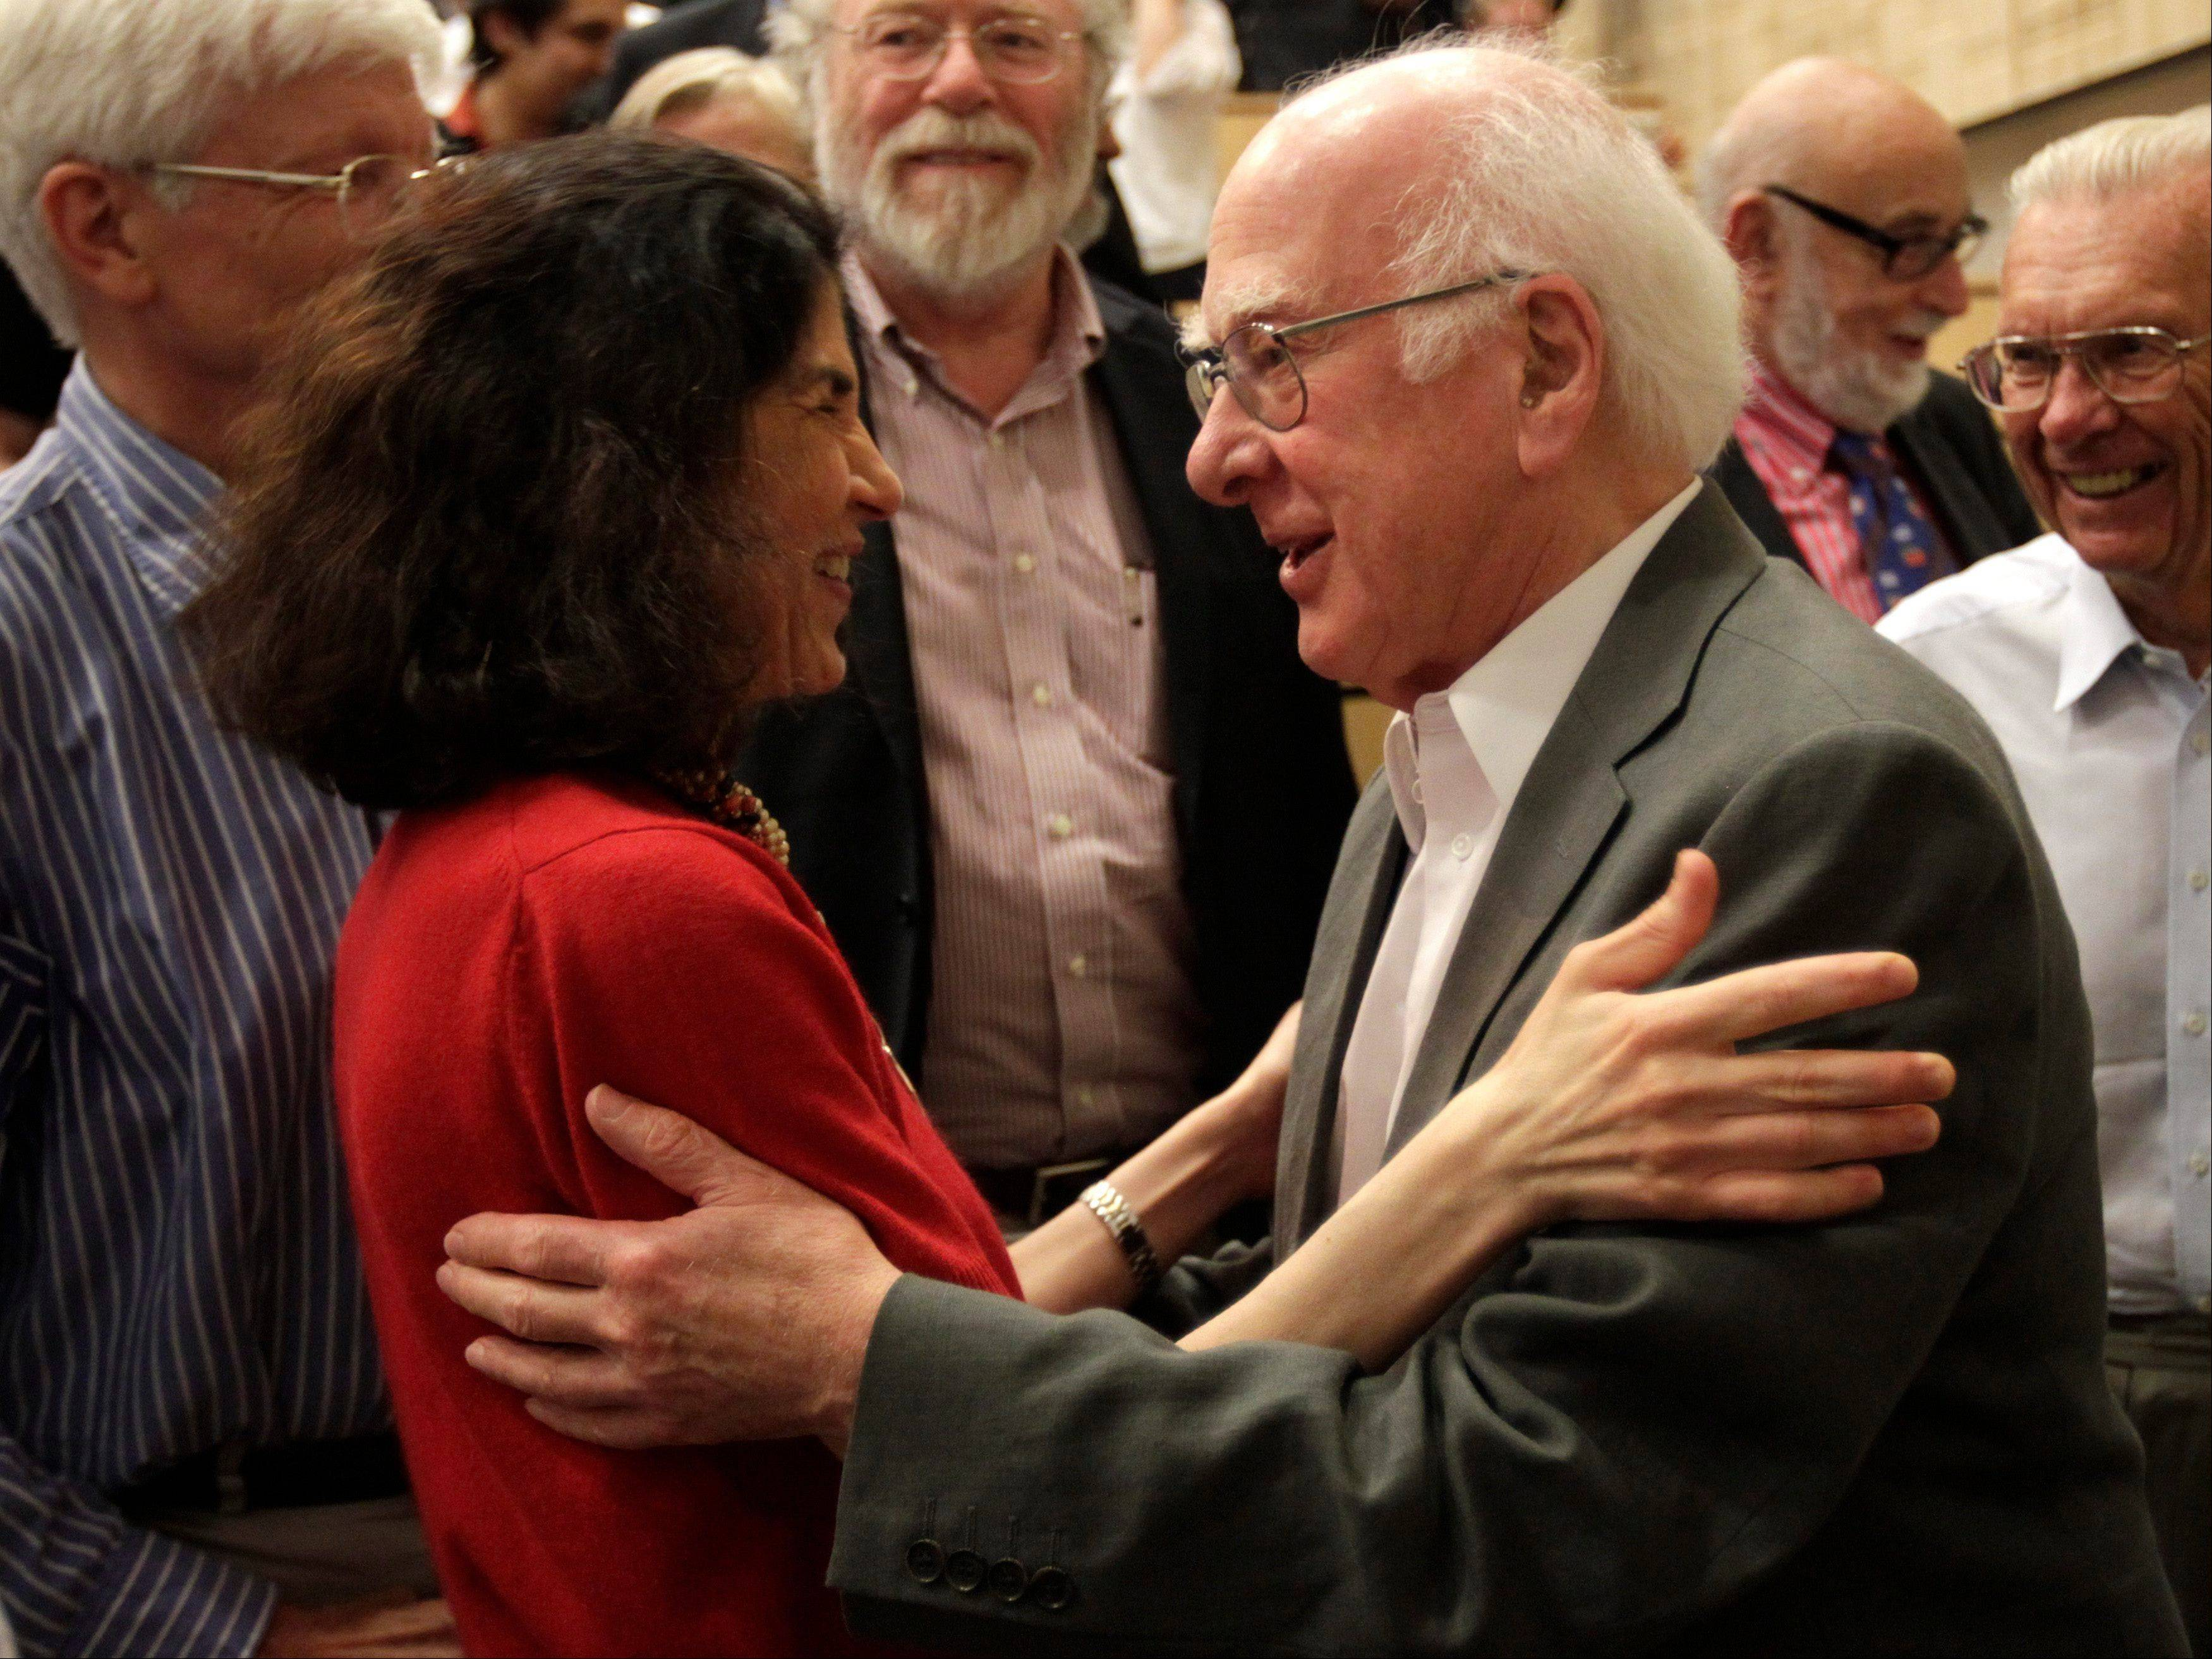 British physicist Peter Higgs congratulates Fabiola Gianotti, ATLAS experiment spokeswoman, after her results presentation during a scientific seminar July 4 to deliver the latest update in the search for the Higgs boson.